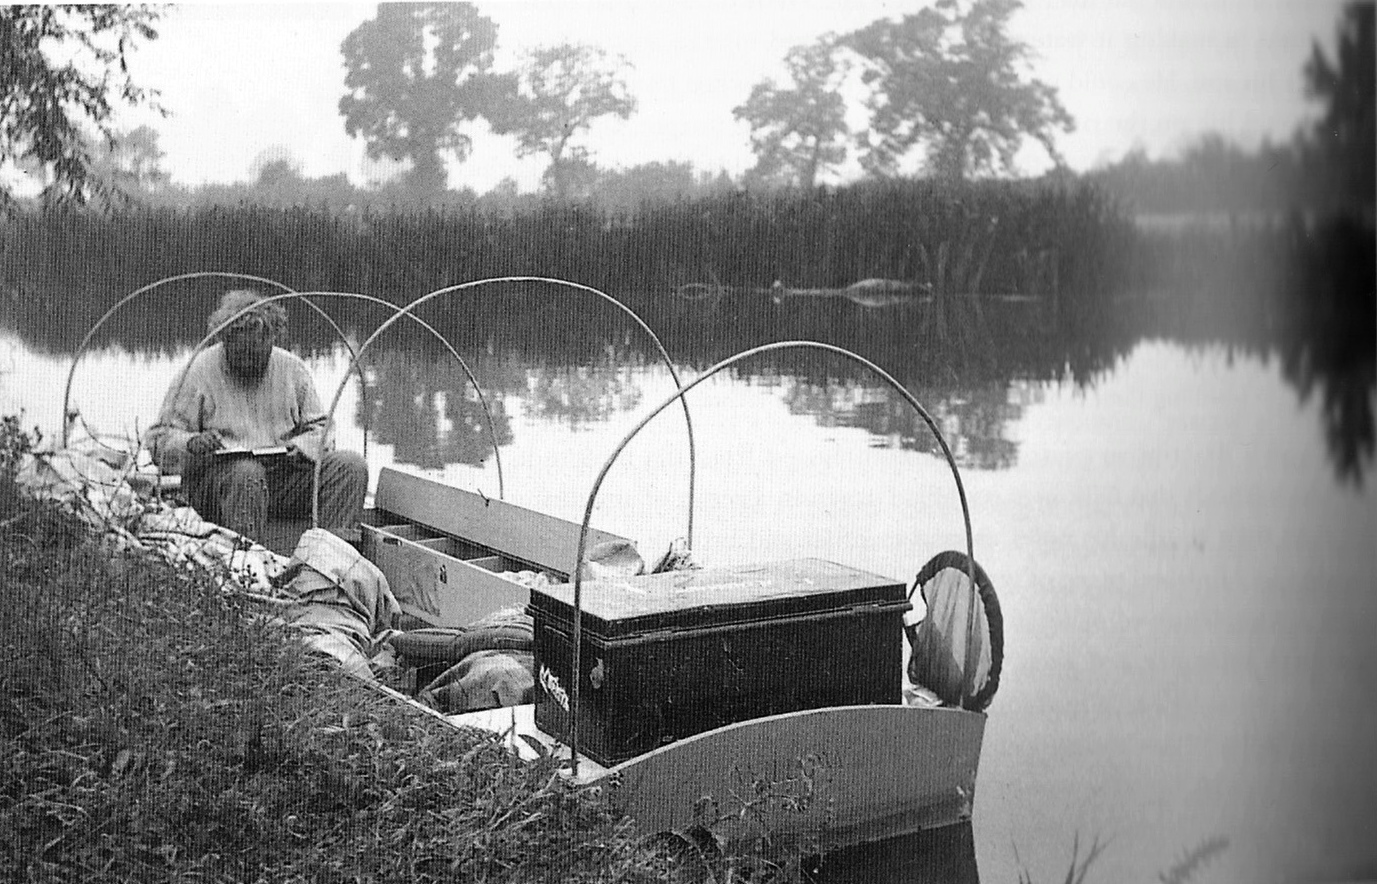 Gibbings making notes in his boat the 'Willow' on his journey down the Thames in 1939, RUL.